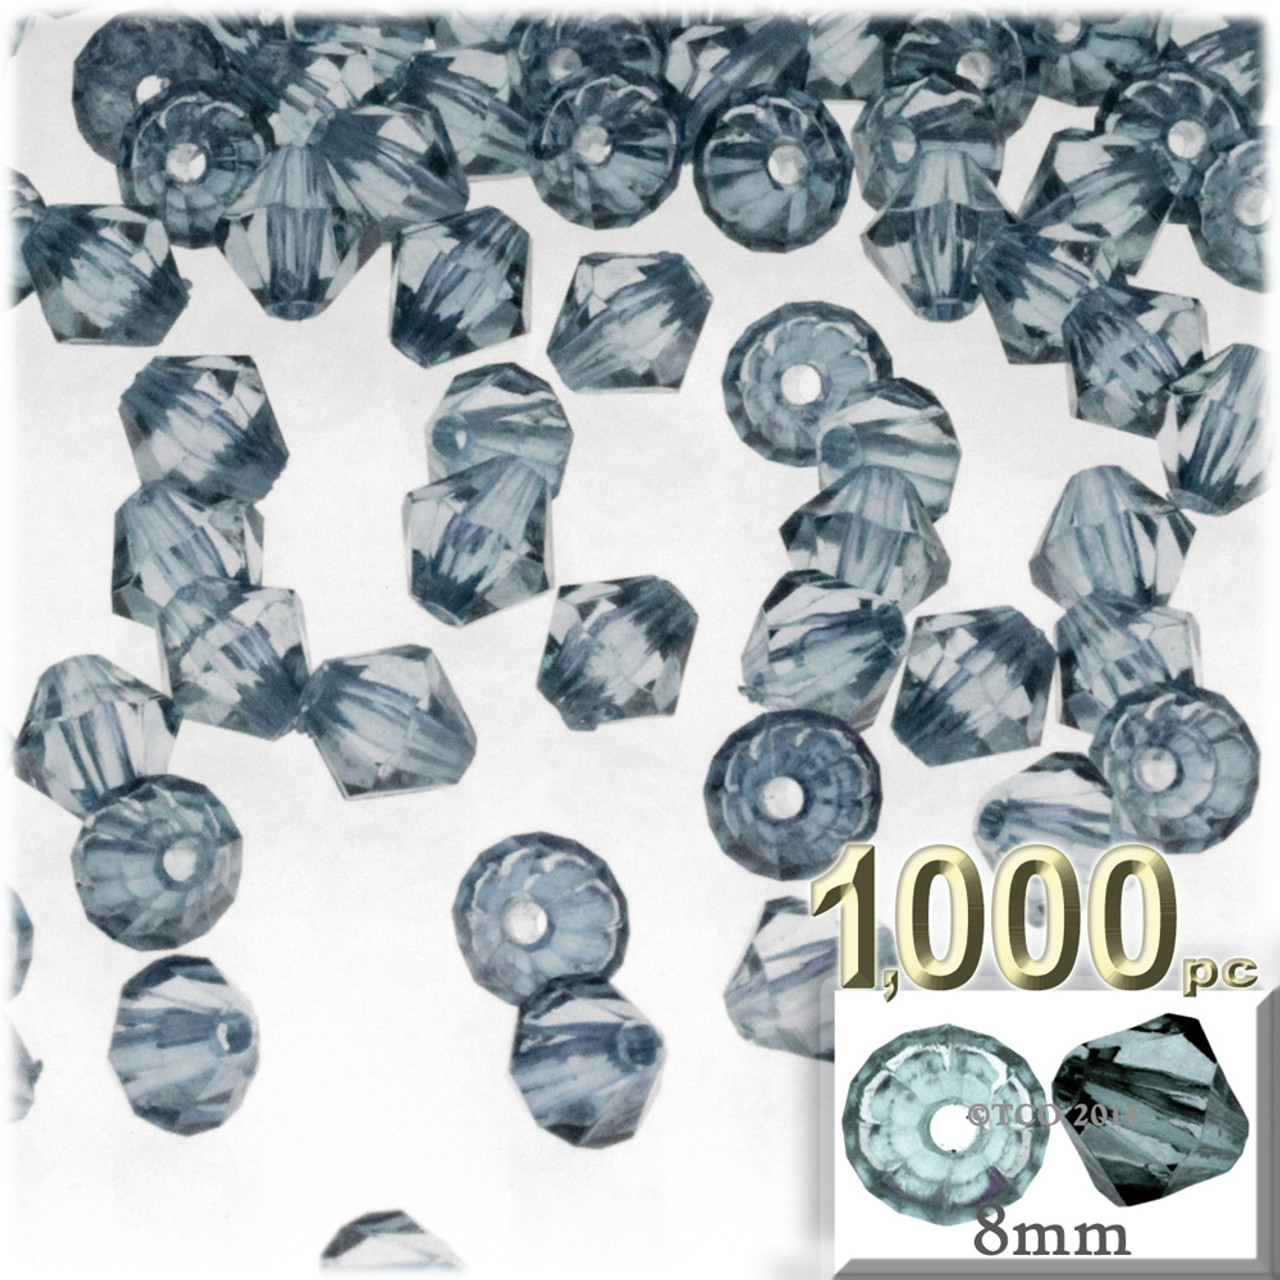 8mm Jeans Plastic Beads Bicone Transparent 8mm 1000 Pc Blue Jeans